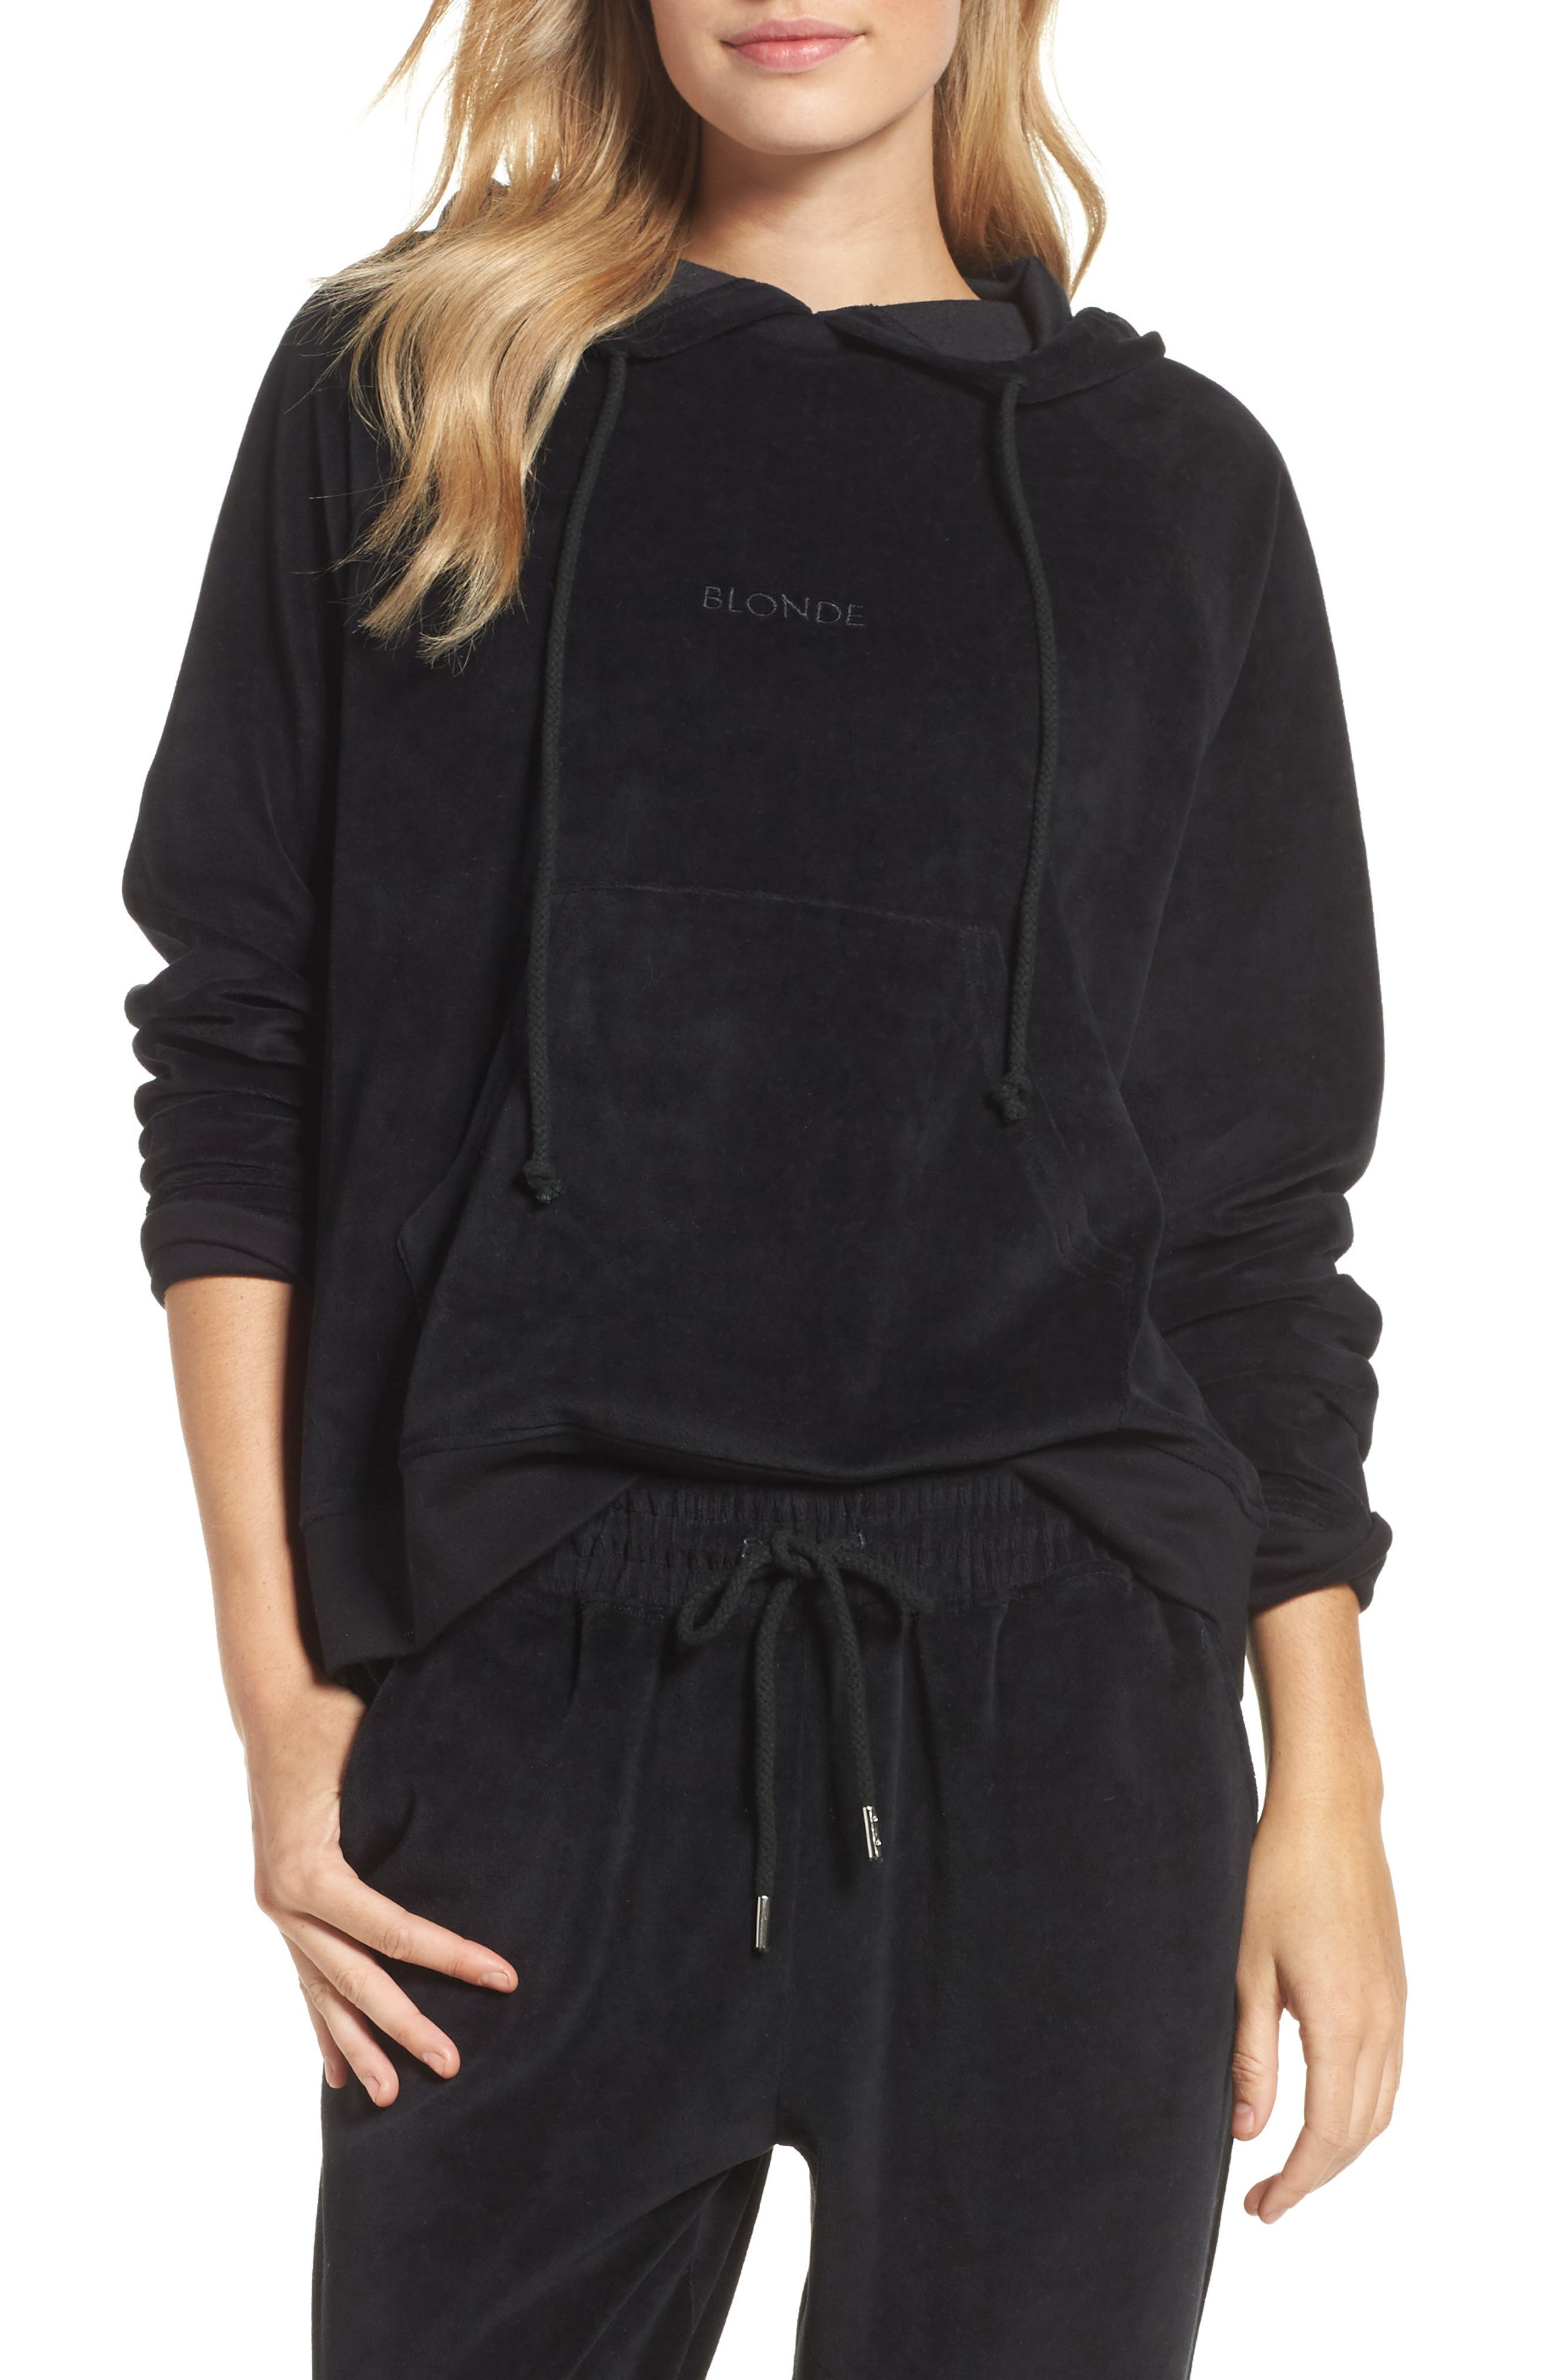 Main Image - BRUNETTE the Label Blonde Embroidered Velour Hoodie